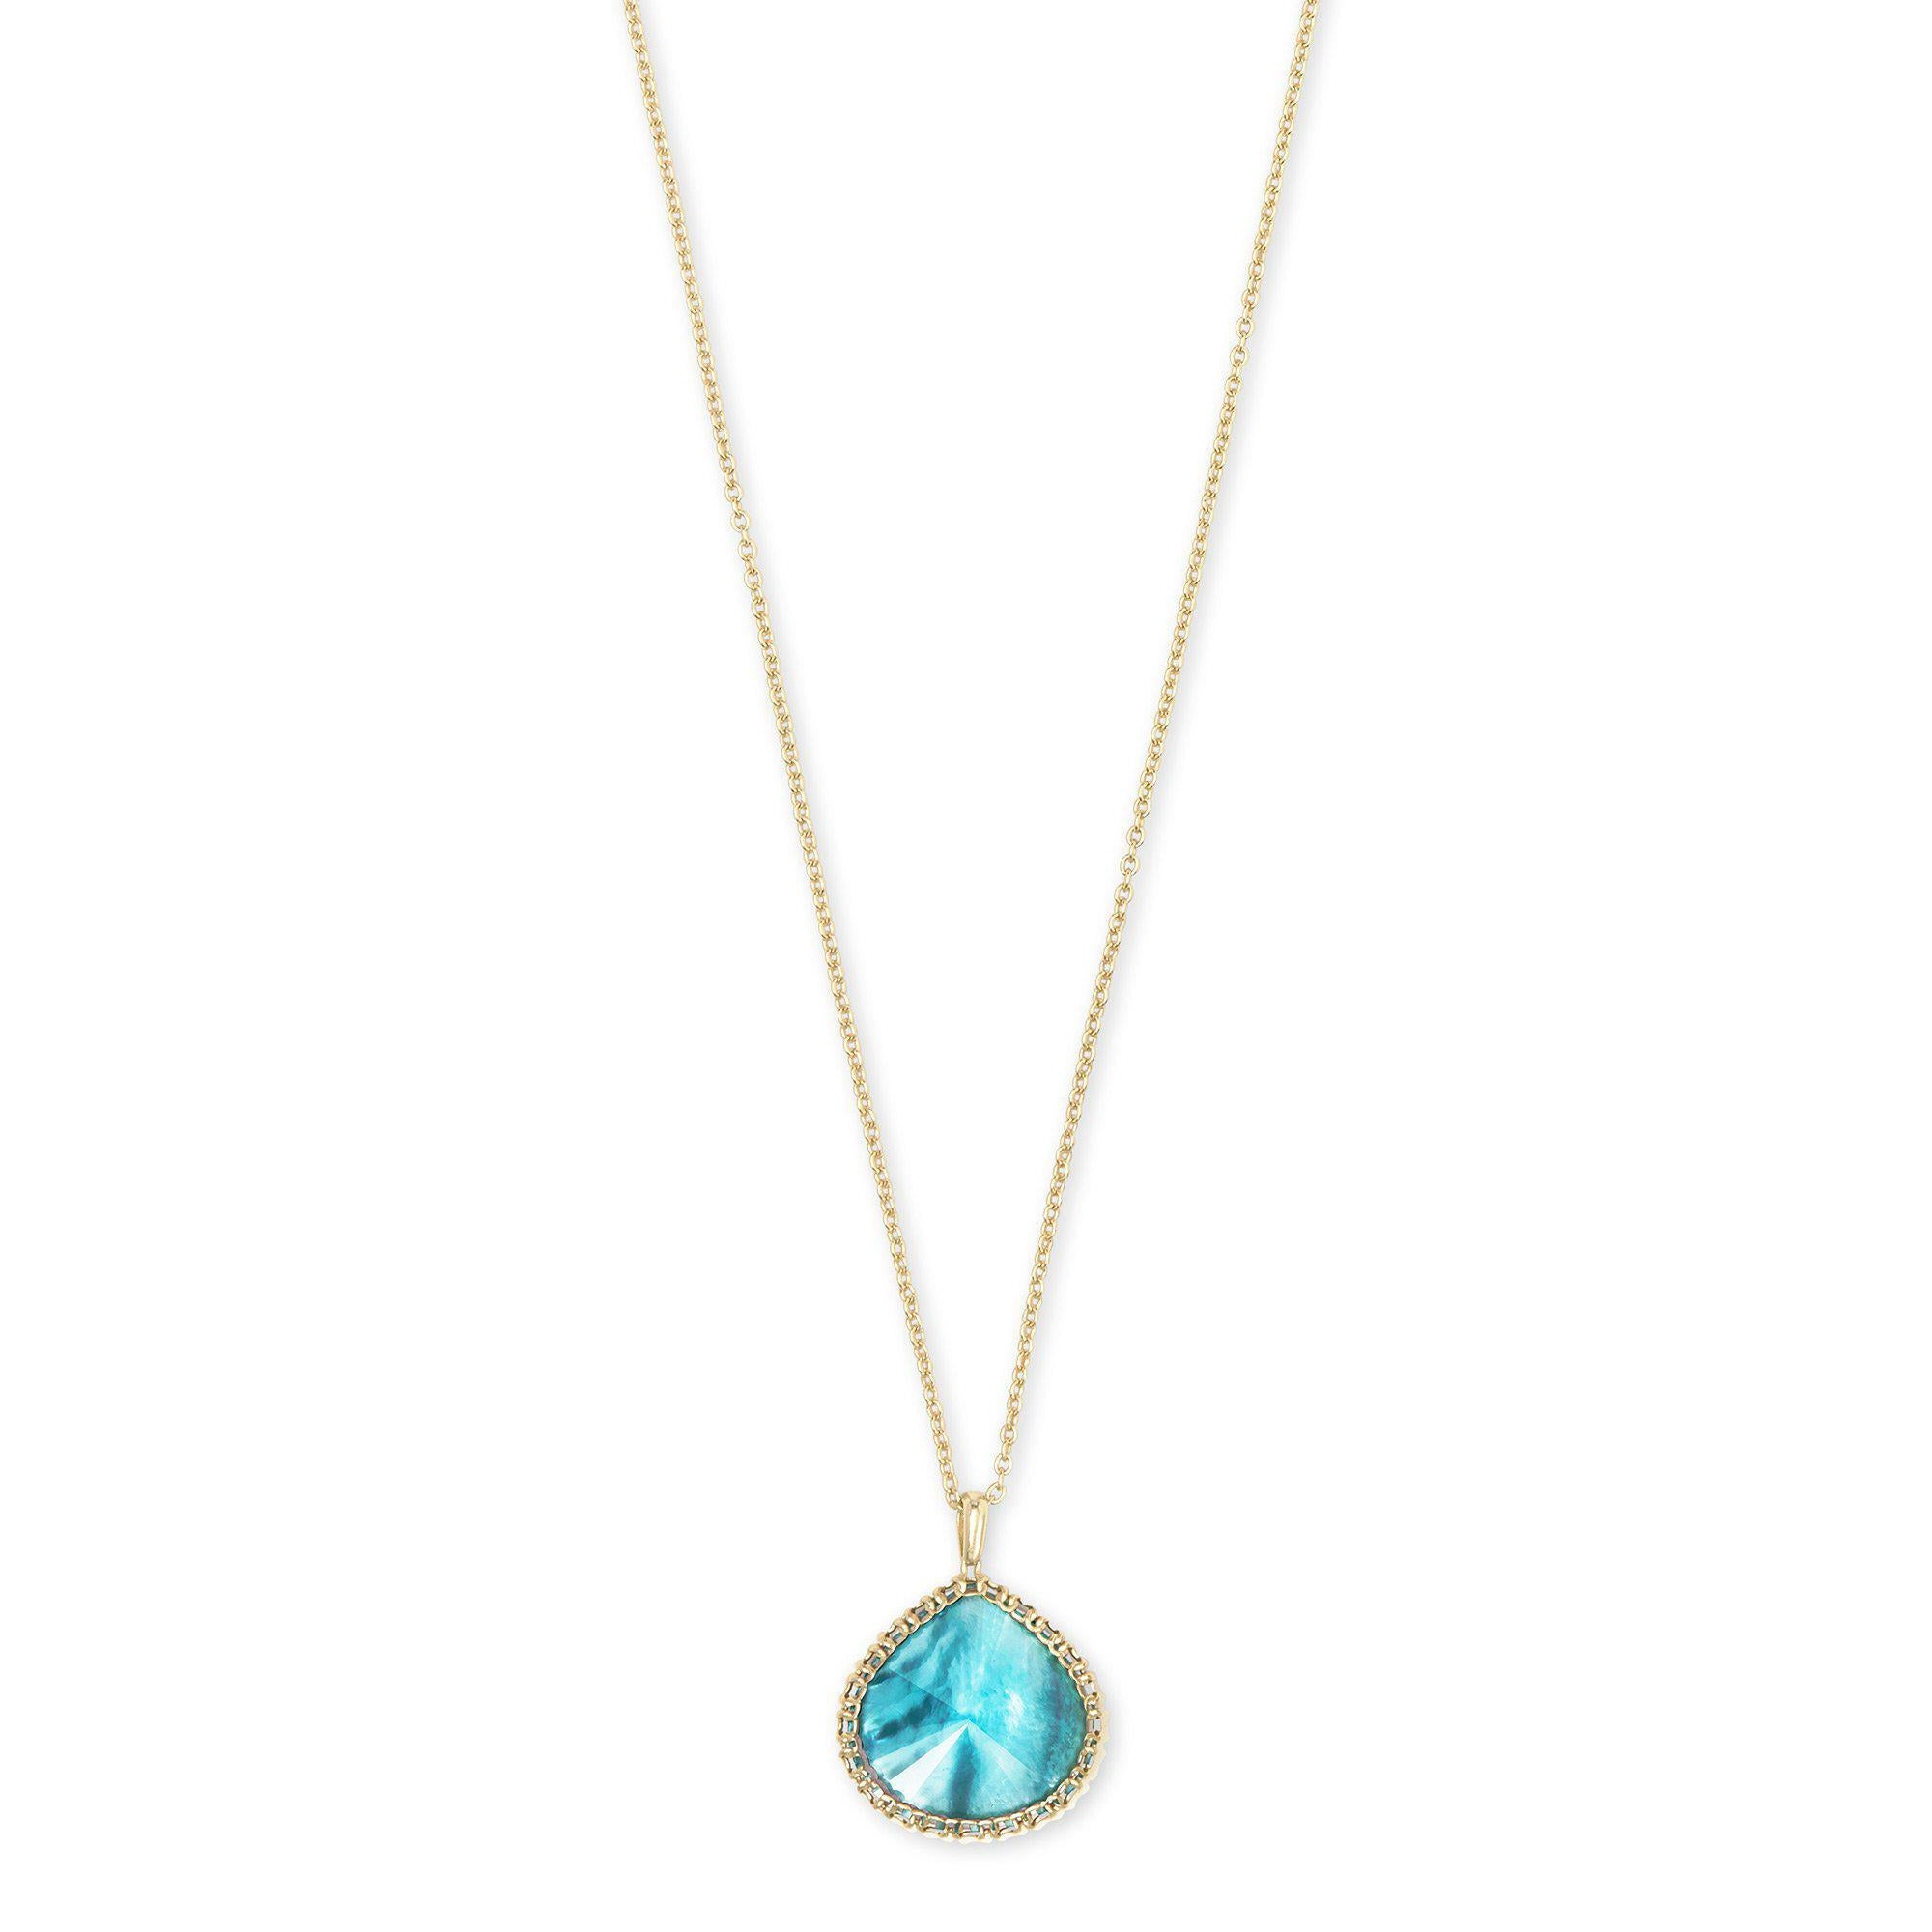 Kenzie Small Long Pendant Necklace in Gold Aqua Illusion